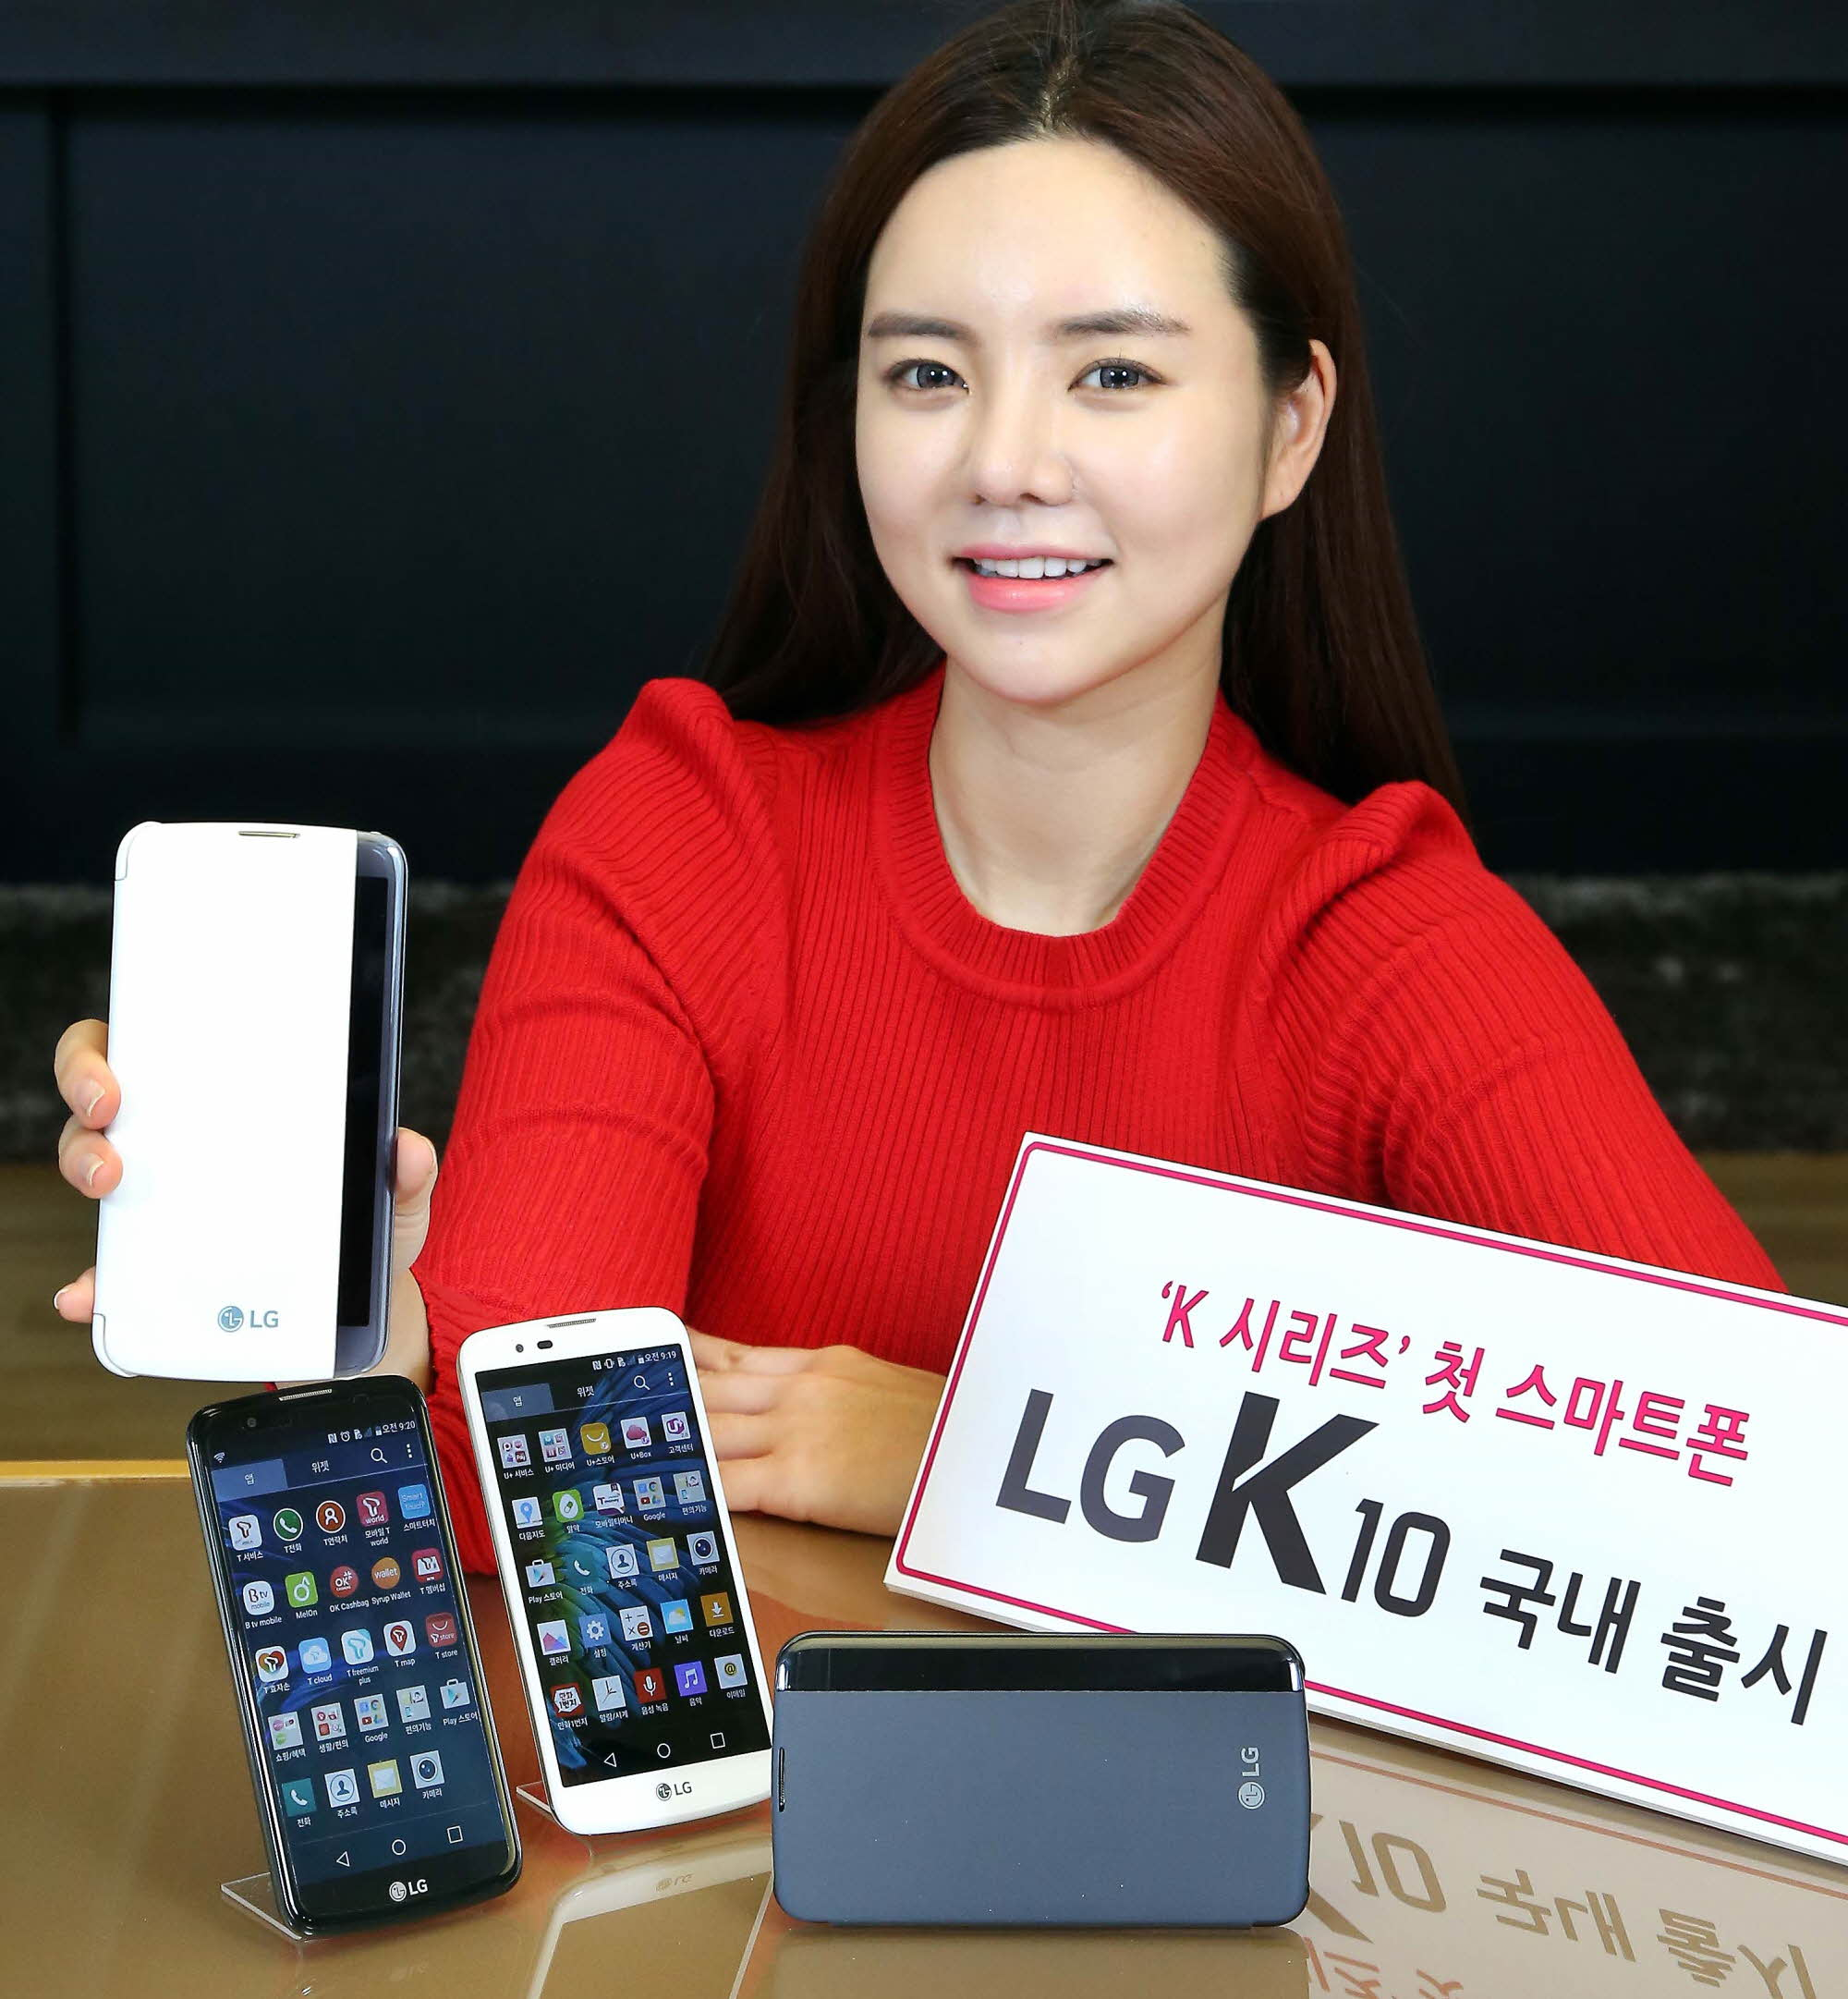 LG-K10-that-interesting-cover-is-likely-a-Korea-only-product